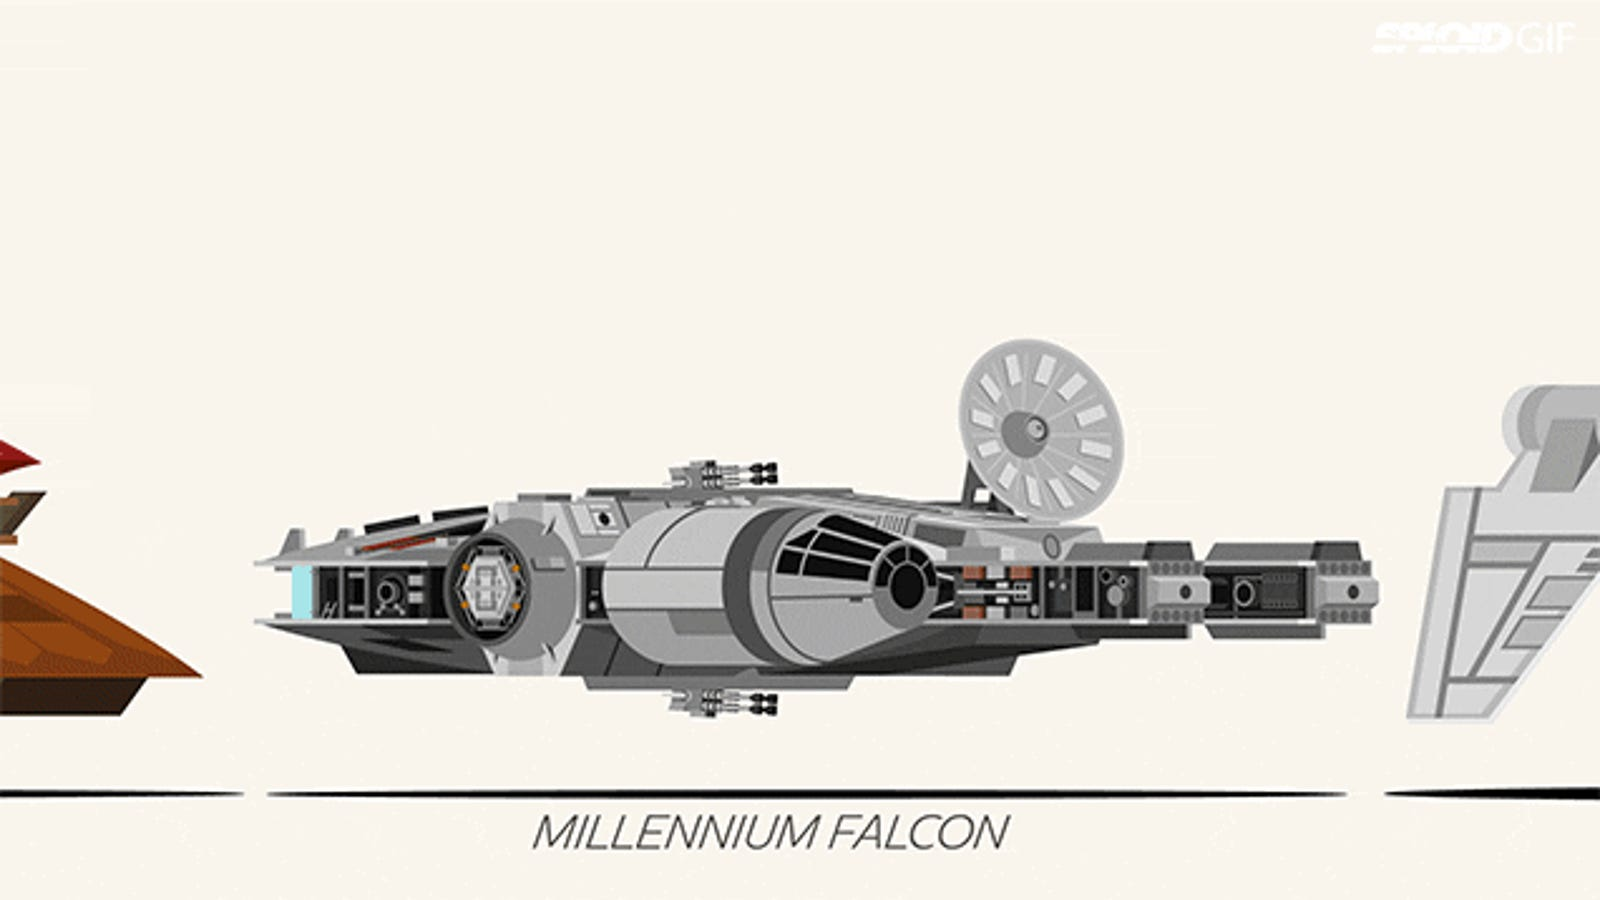 Video: Every vehicle in the original Star Wars trilogy to scale